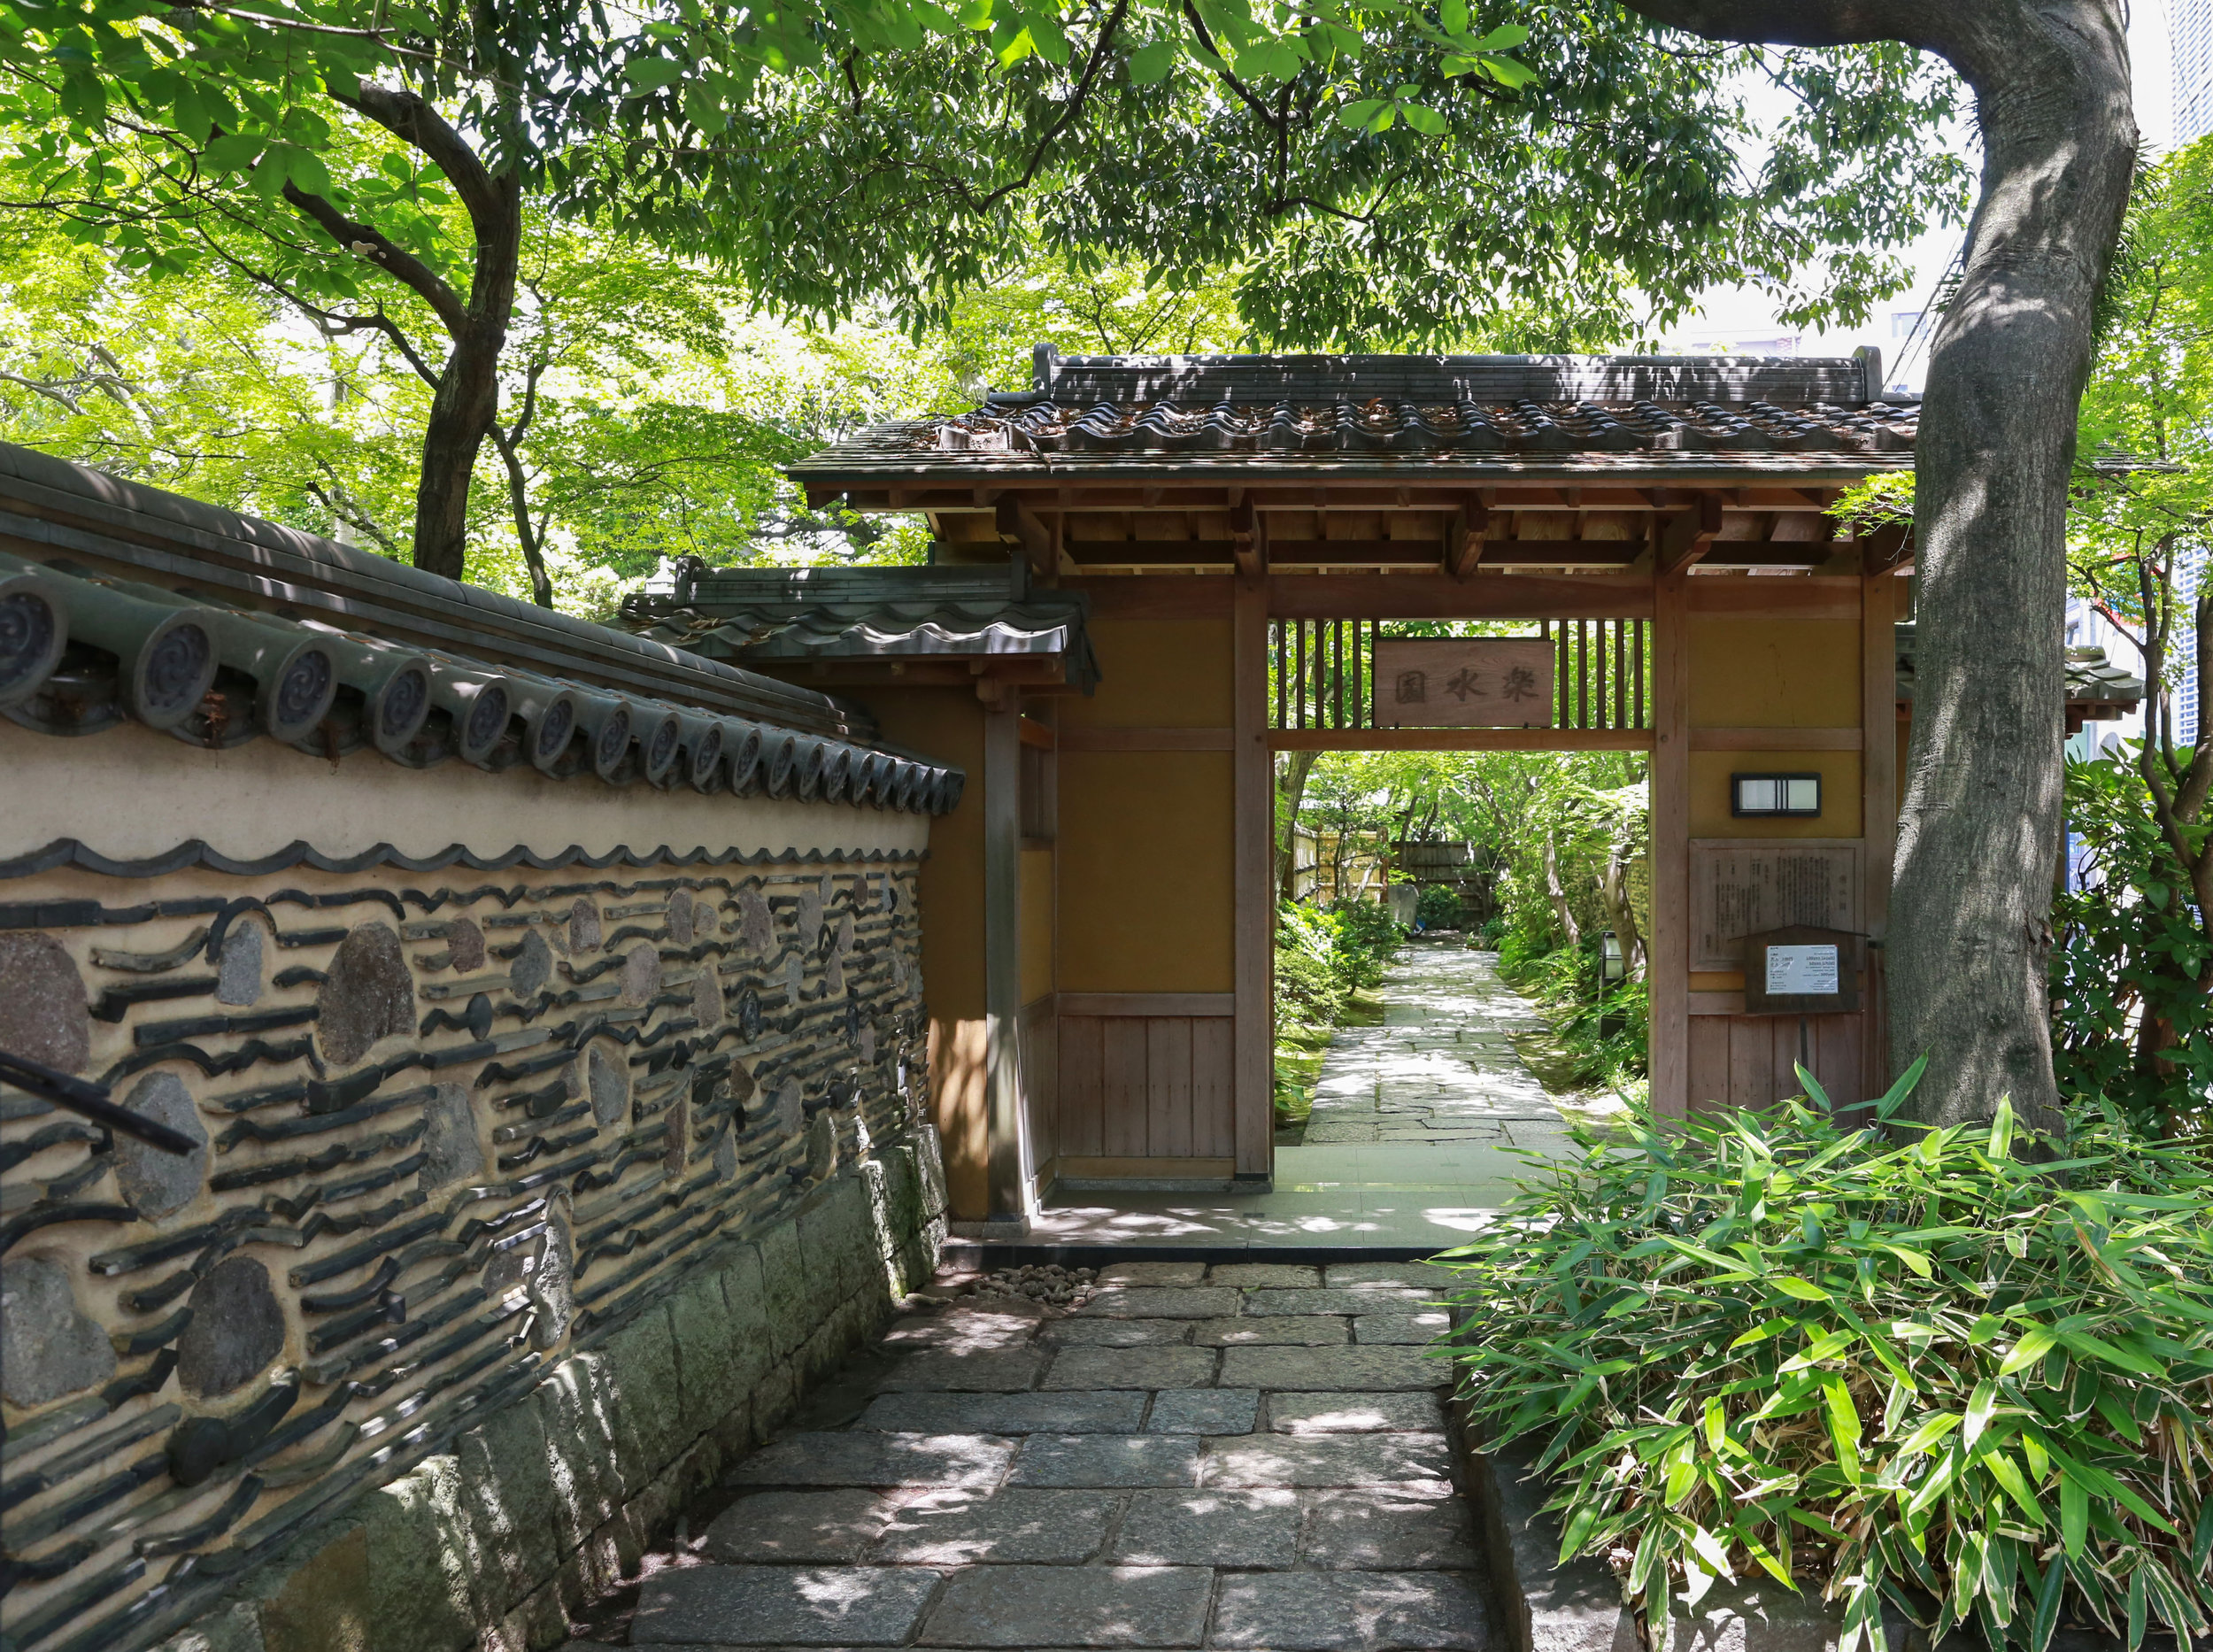 The entry gate of Rakusui-en, a garden and teahouse that was once the mansion of a Hakata merchant 100 years ago, in Fukuoka, Japan, June 22, 2018.